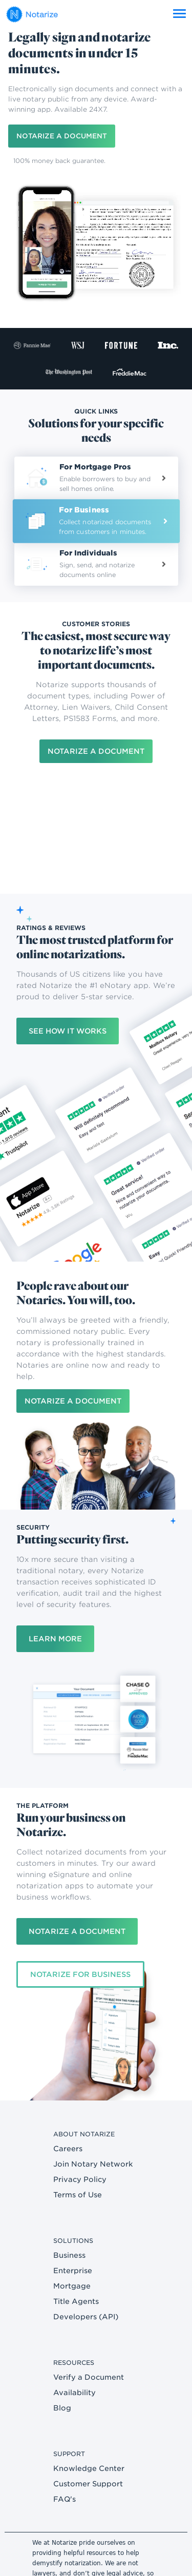 Example of Design for Uncategorized, Mobile Landing Page by notarize.com-V2 | Mobile Landing Page Design